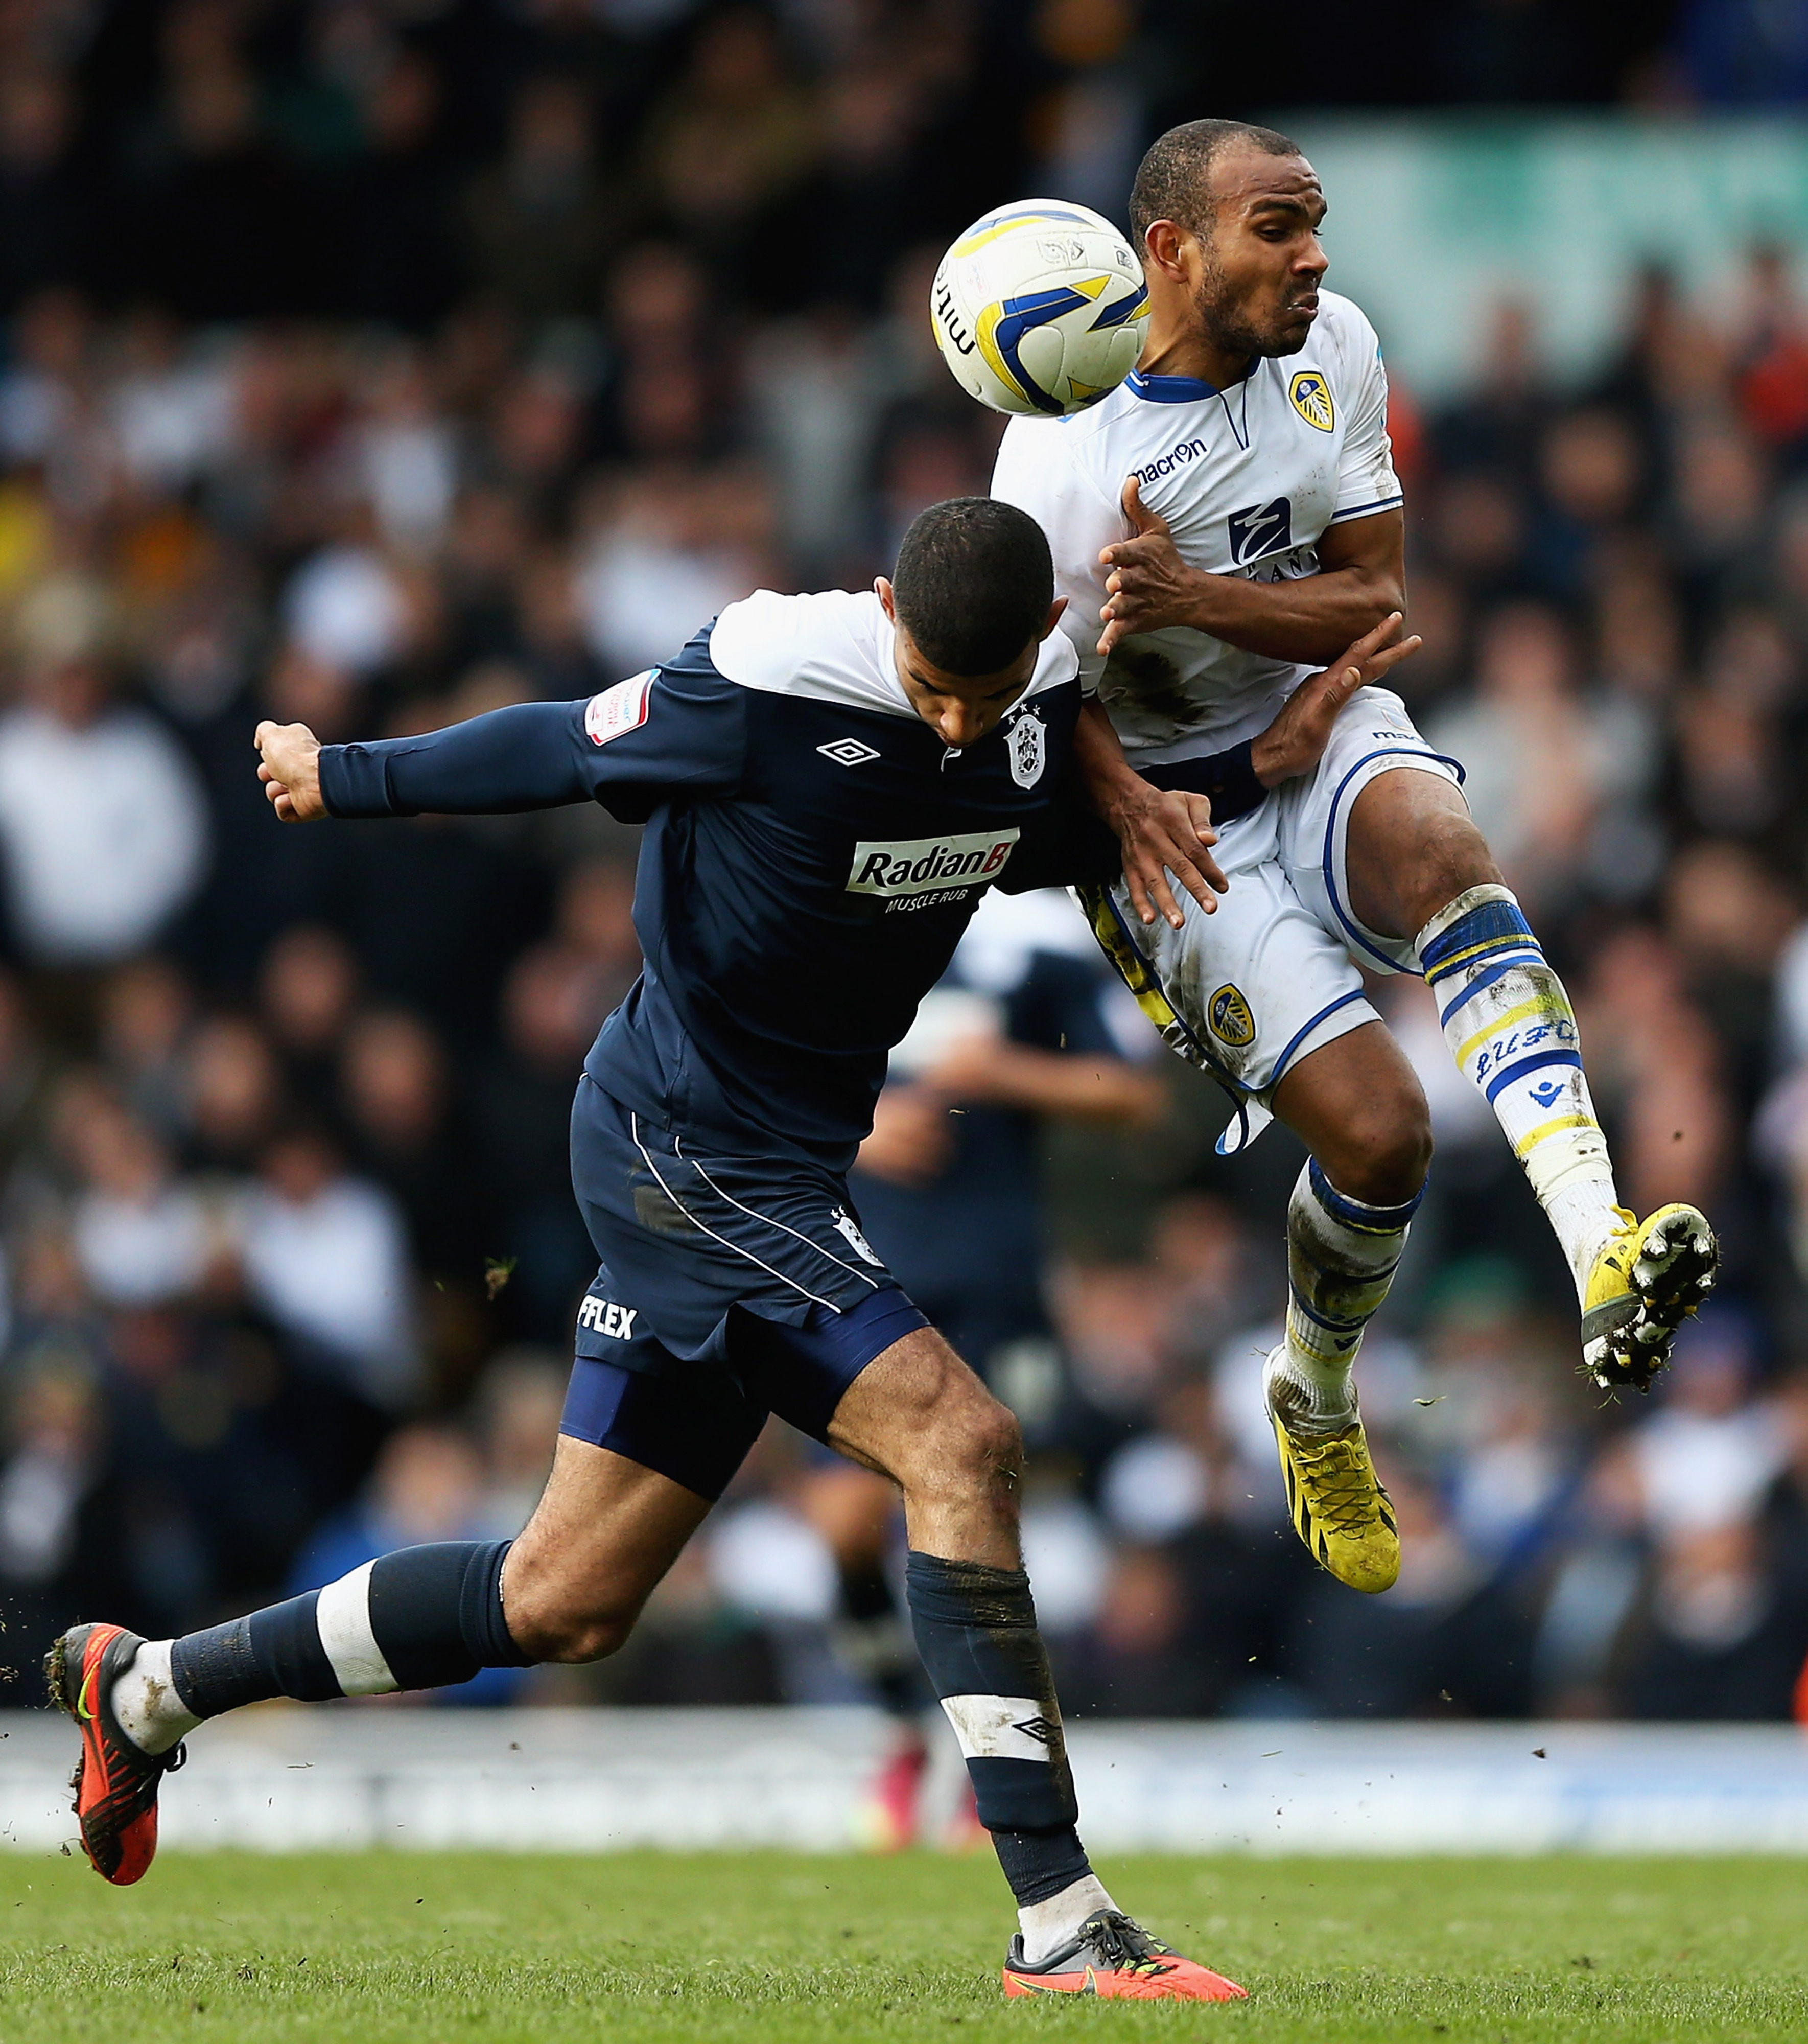 Back in form: Rodolph Austin put in his best performance in a Leeds shirt.